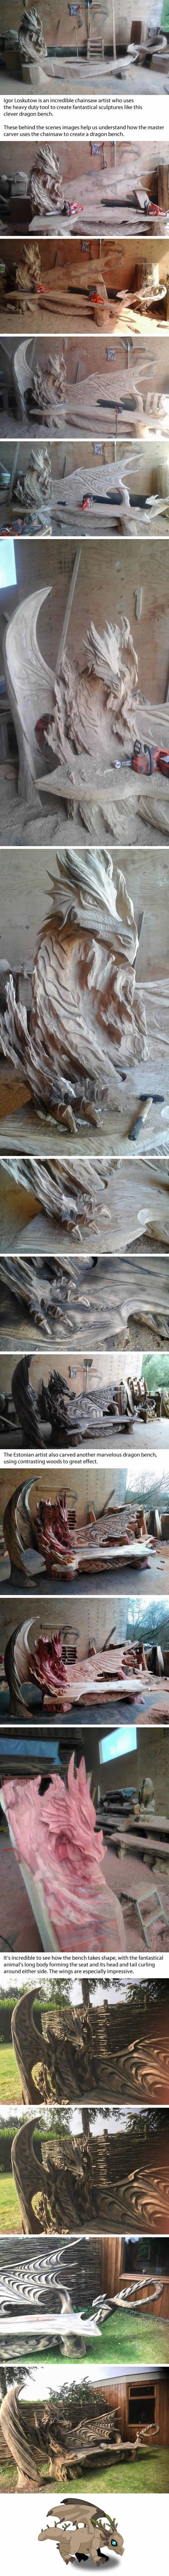 Artist Uses A Chainsaw To Carve An Incredible Dragon Bench